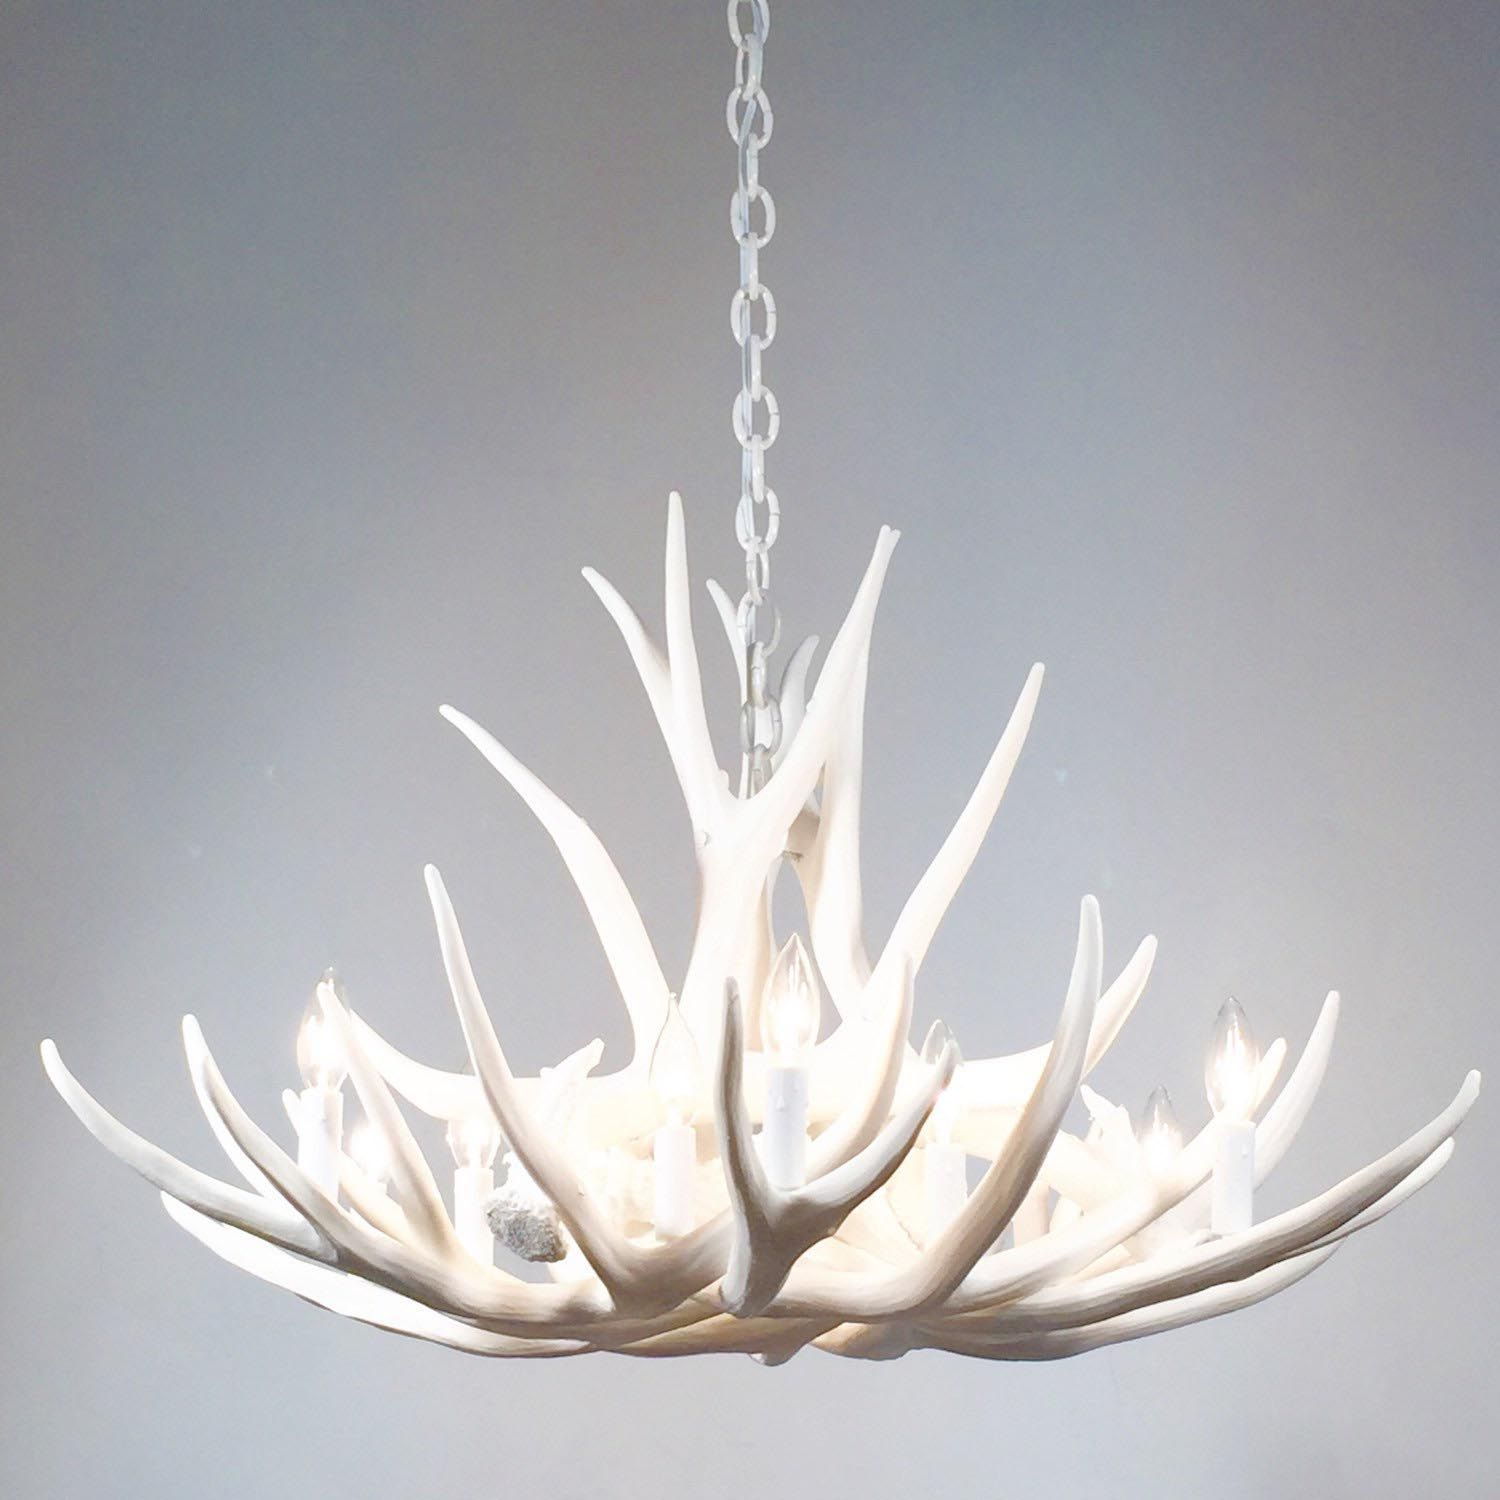 Deer Antler Chandelier With Crystals